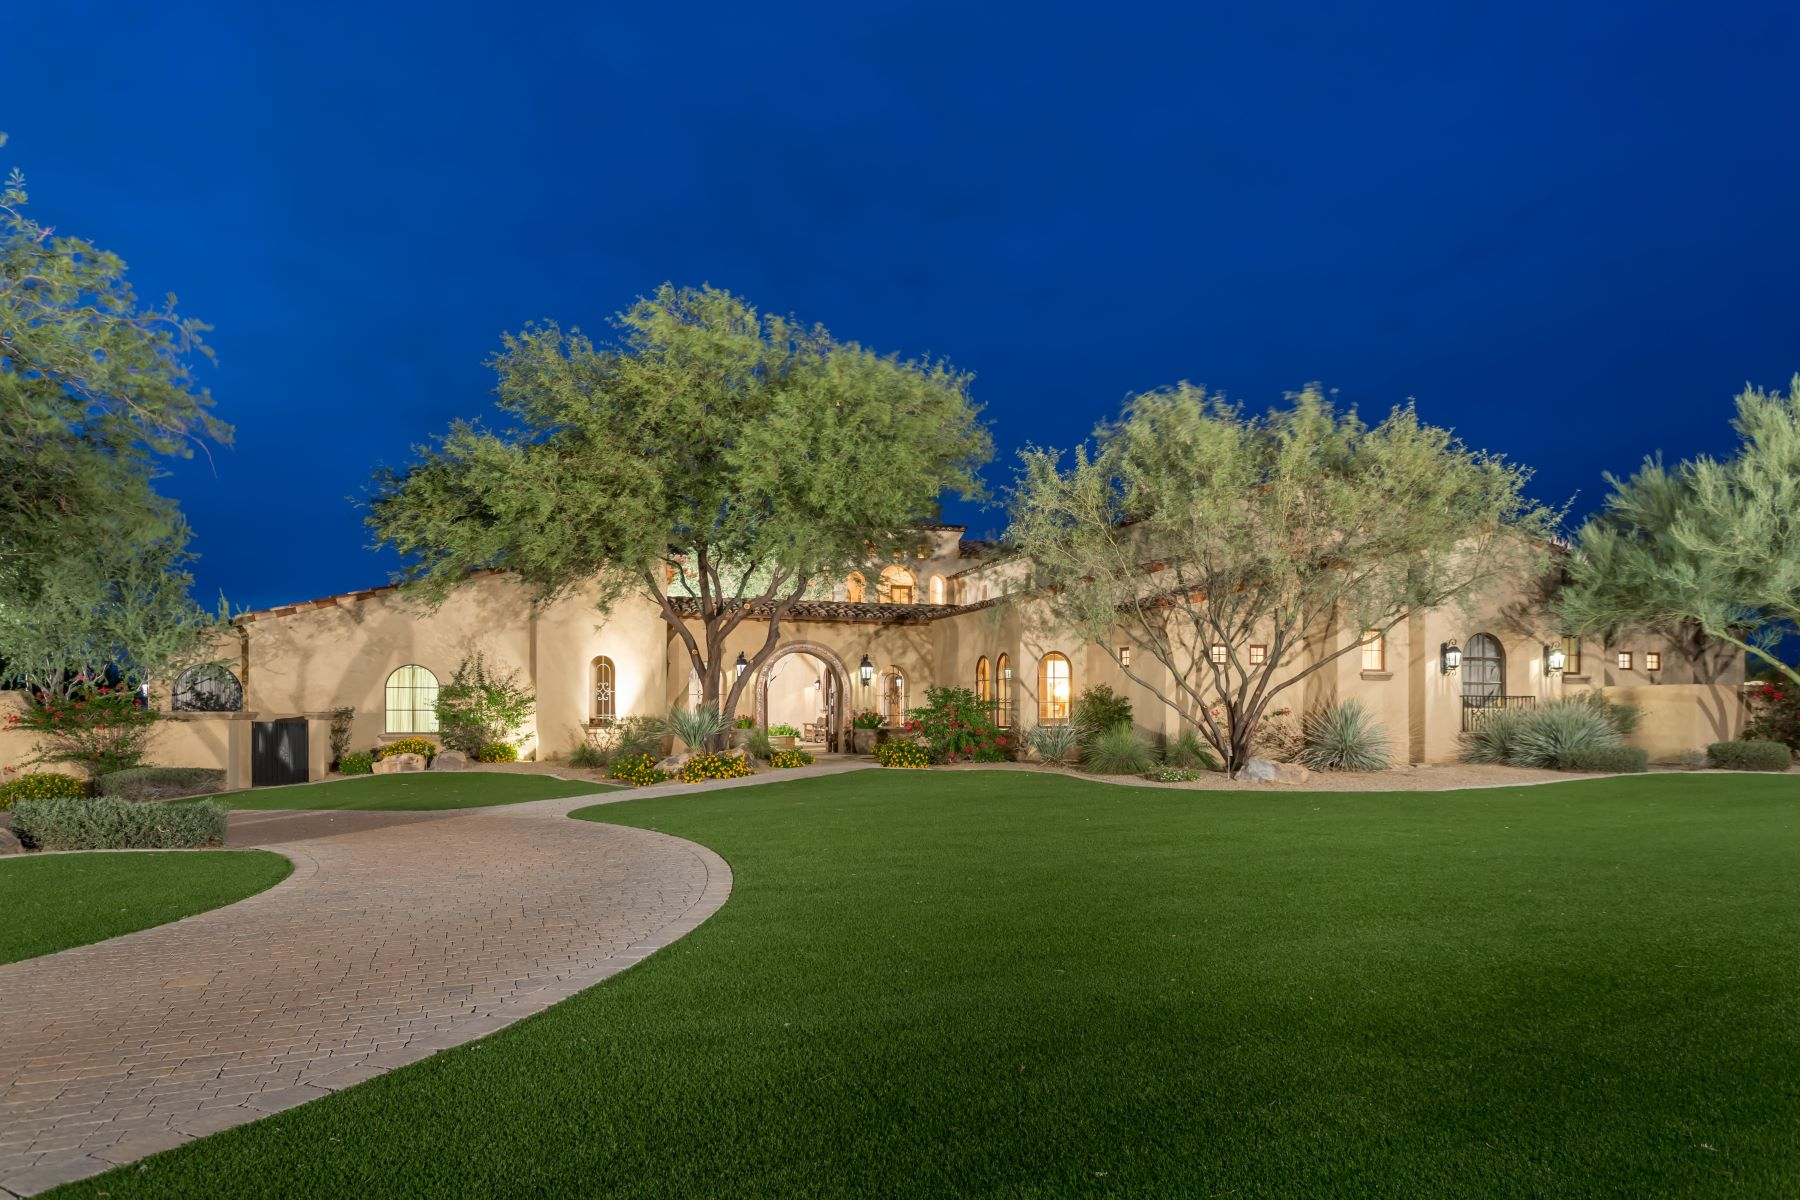 Casa para uma família para Venda às Exclusive Estate Living Surrounded by sprawling mountains 24546 N 91st St Scottsdale, Arizona, 85255 Estados Unidos